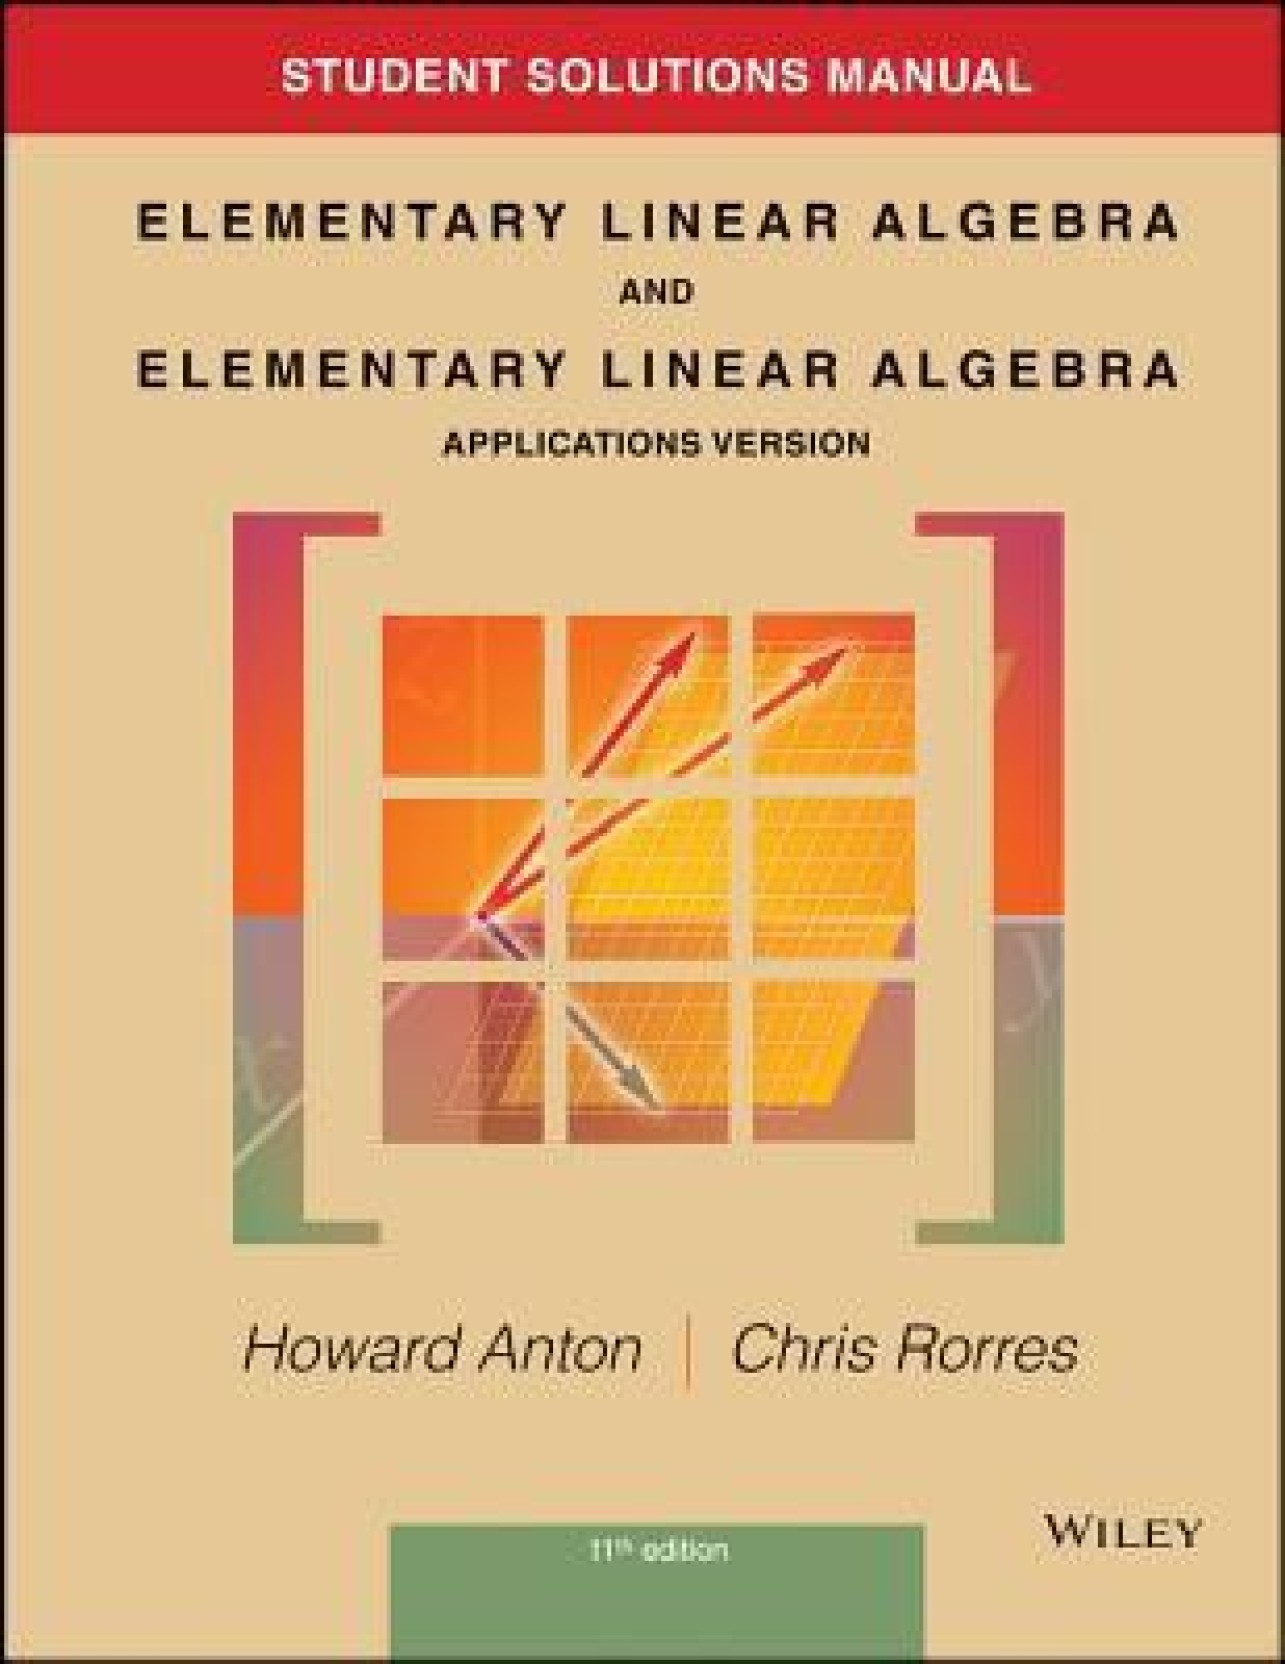 Student Solutions Manual to Accompany Elementary Linear Algebra,  Applications Version, 11E. Share